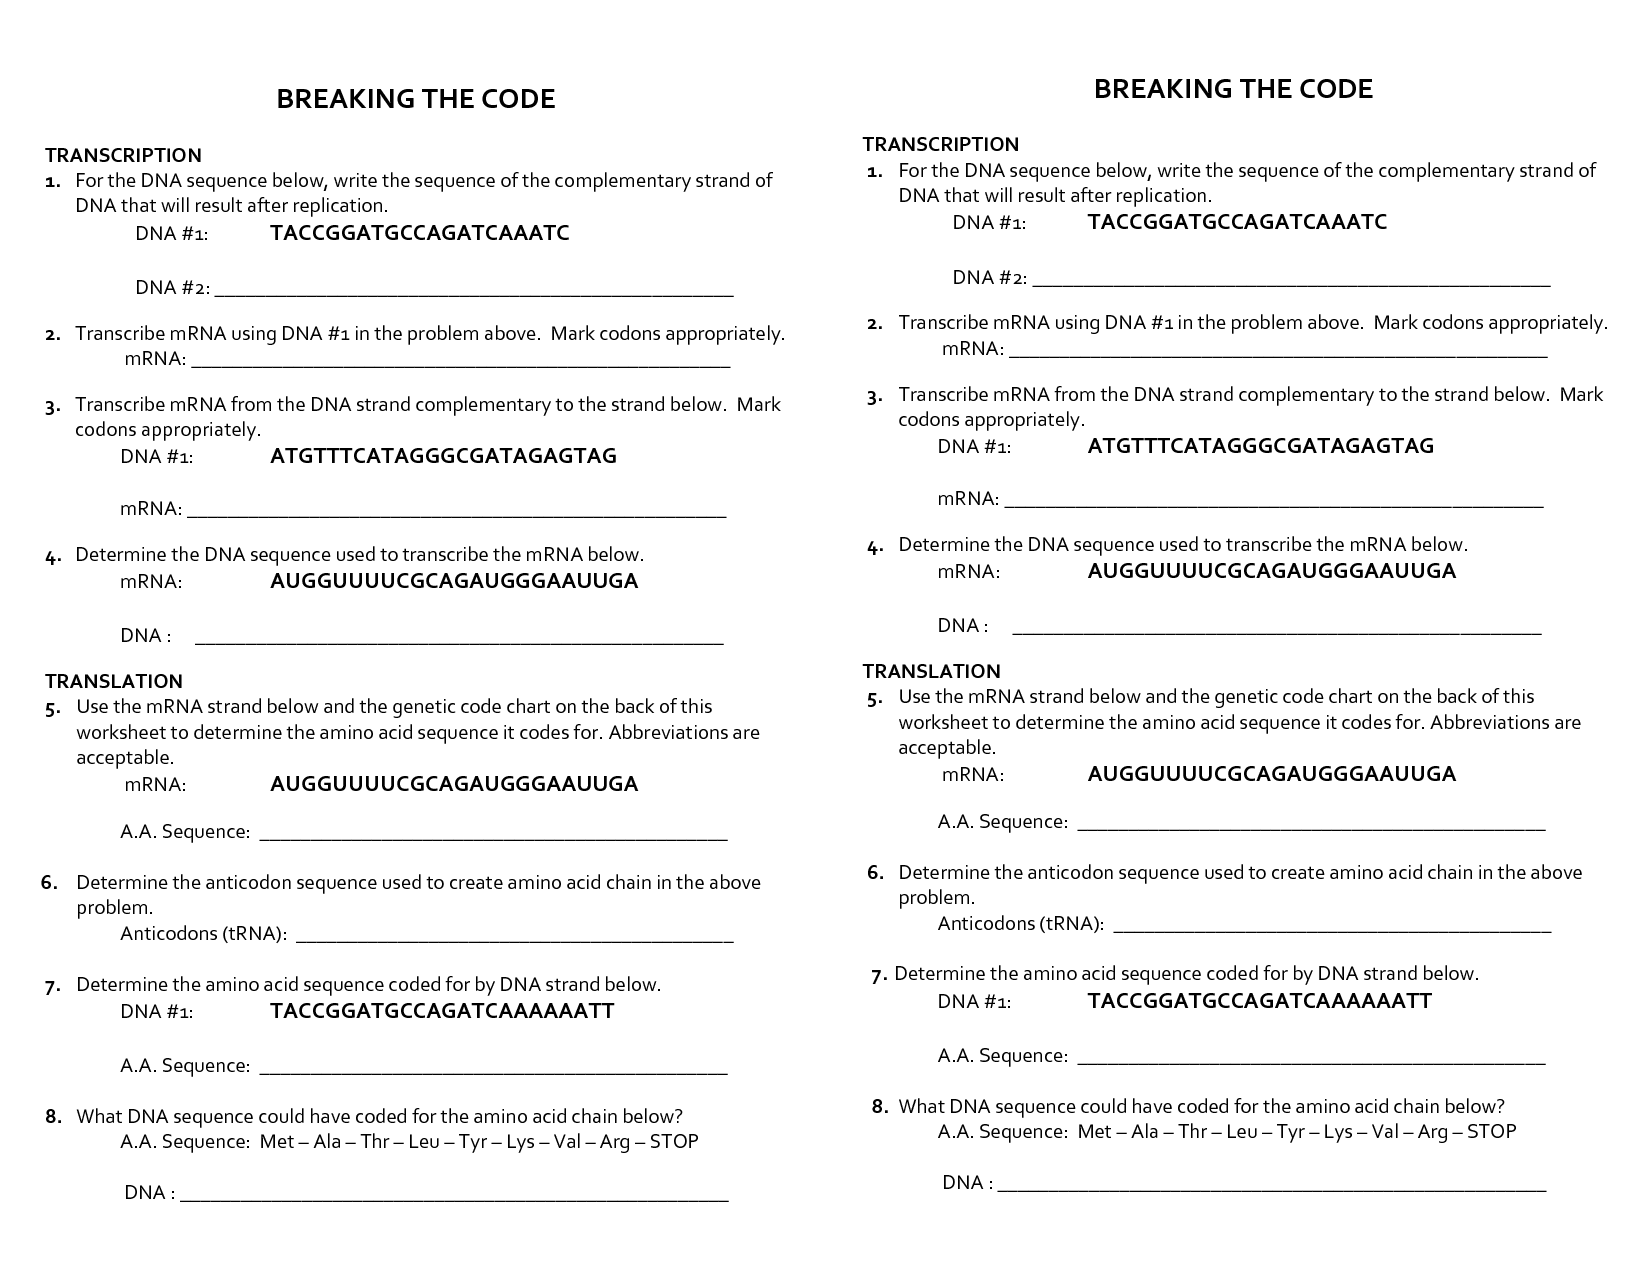 17 Best Images Of Break The Code Worksheets